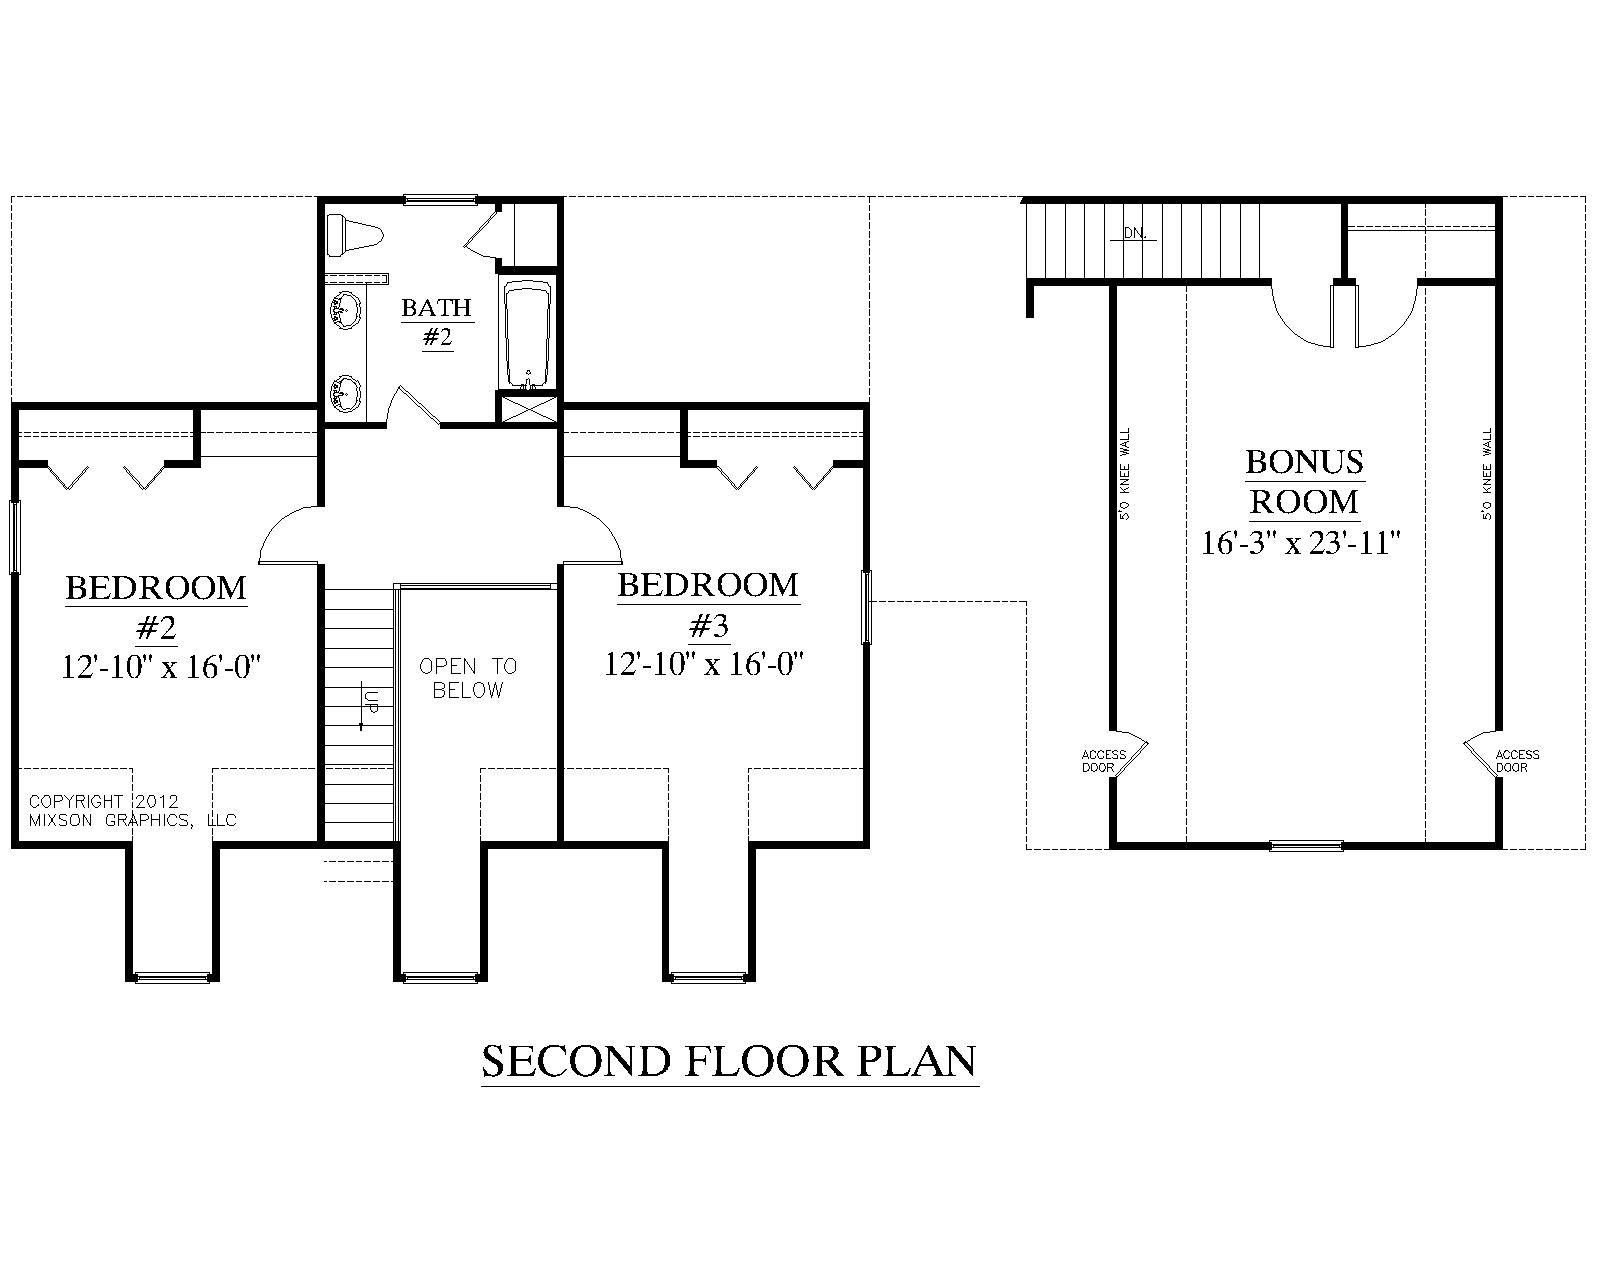 House plan 2091 b mayfield b second floor plan 1 and 1 2 story floor plans